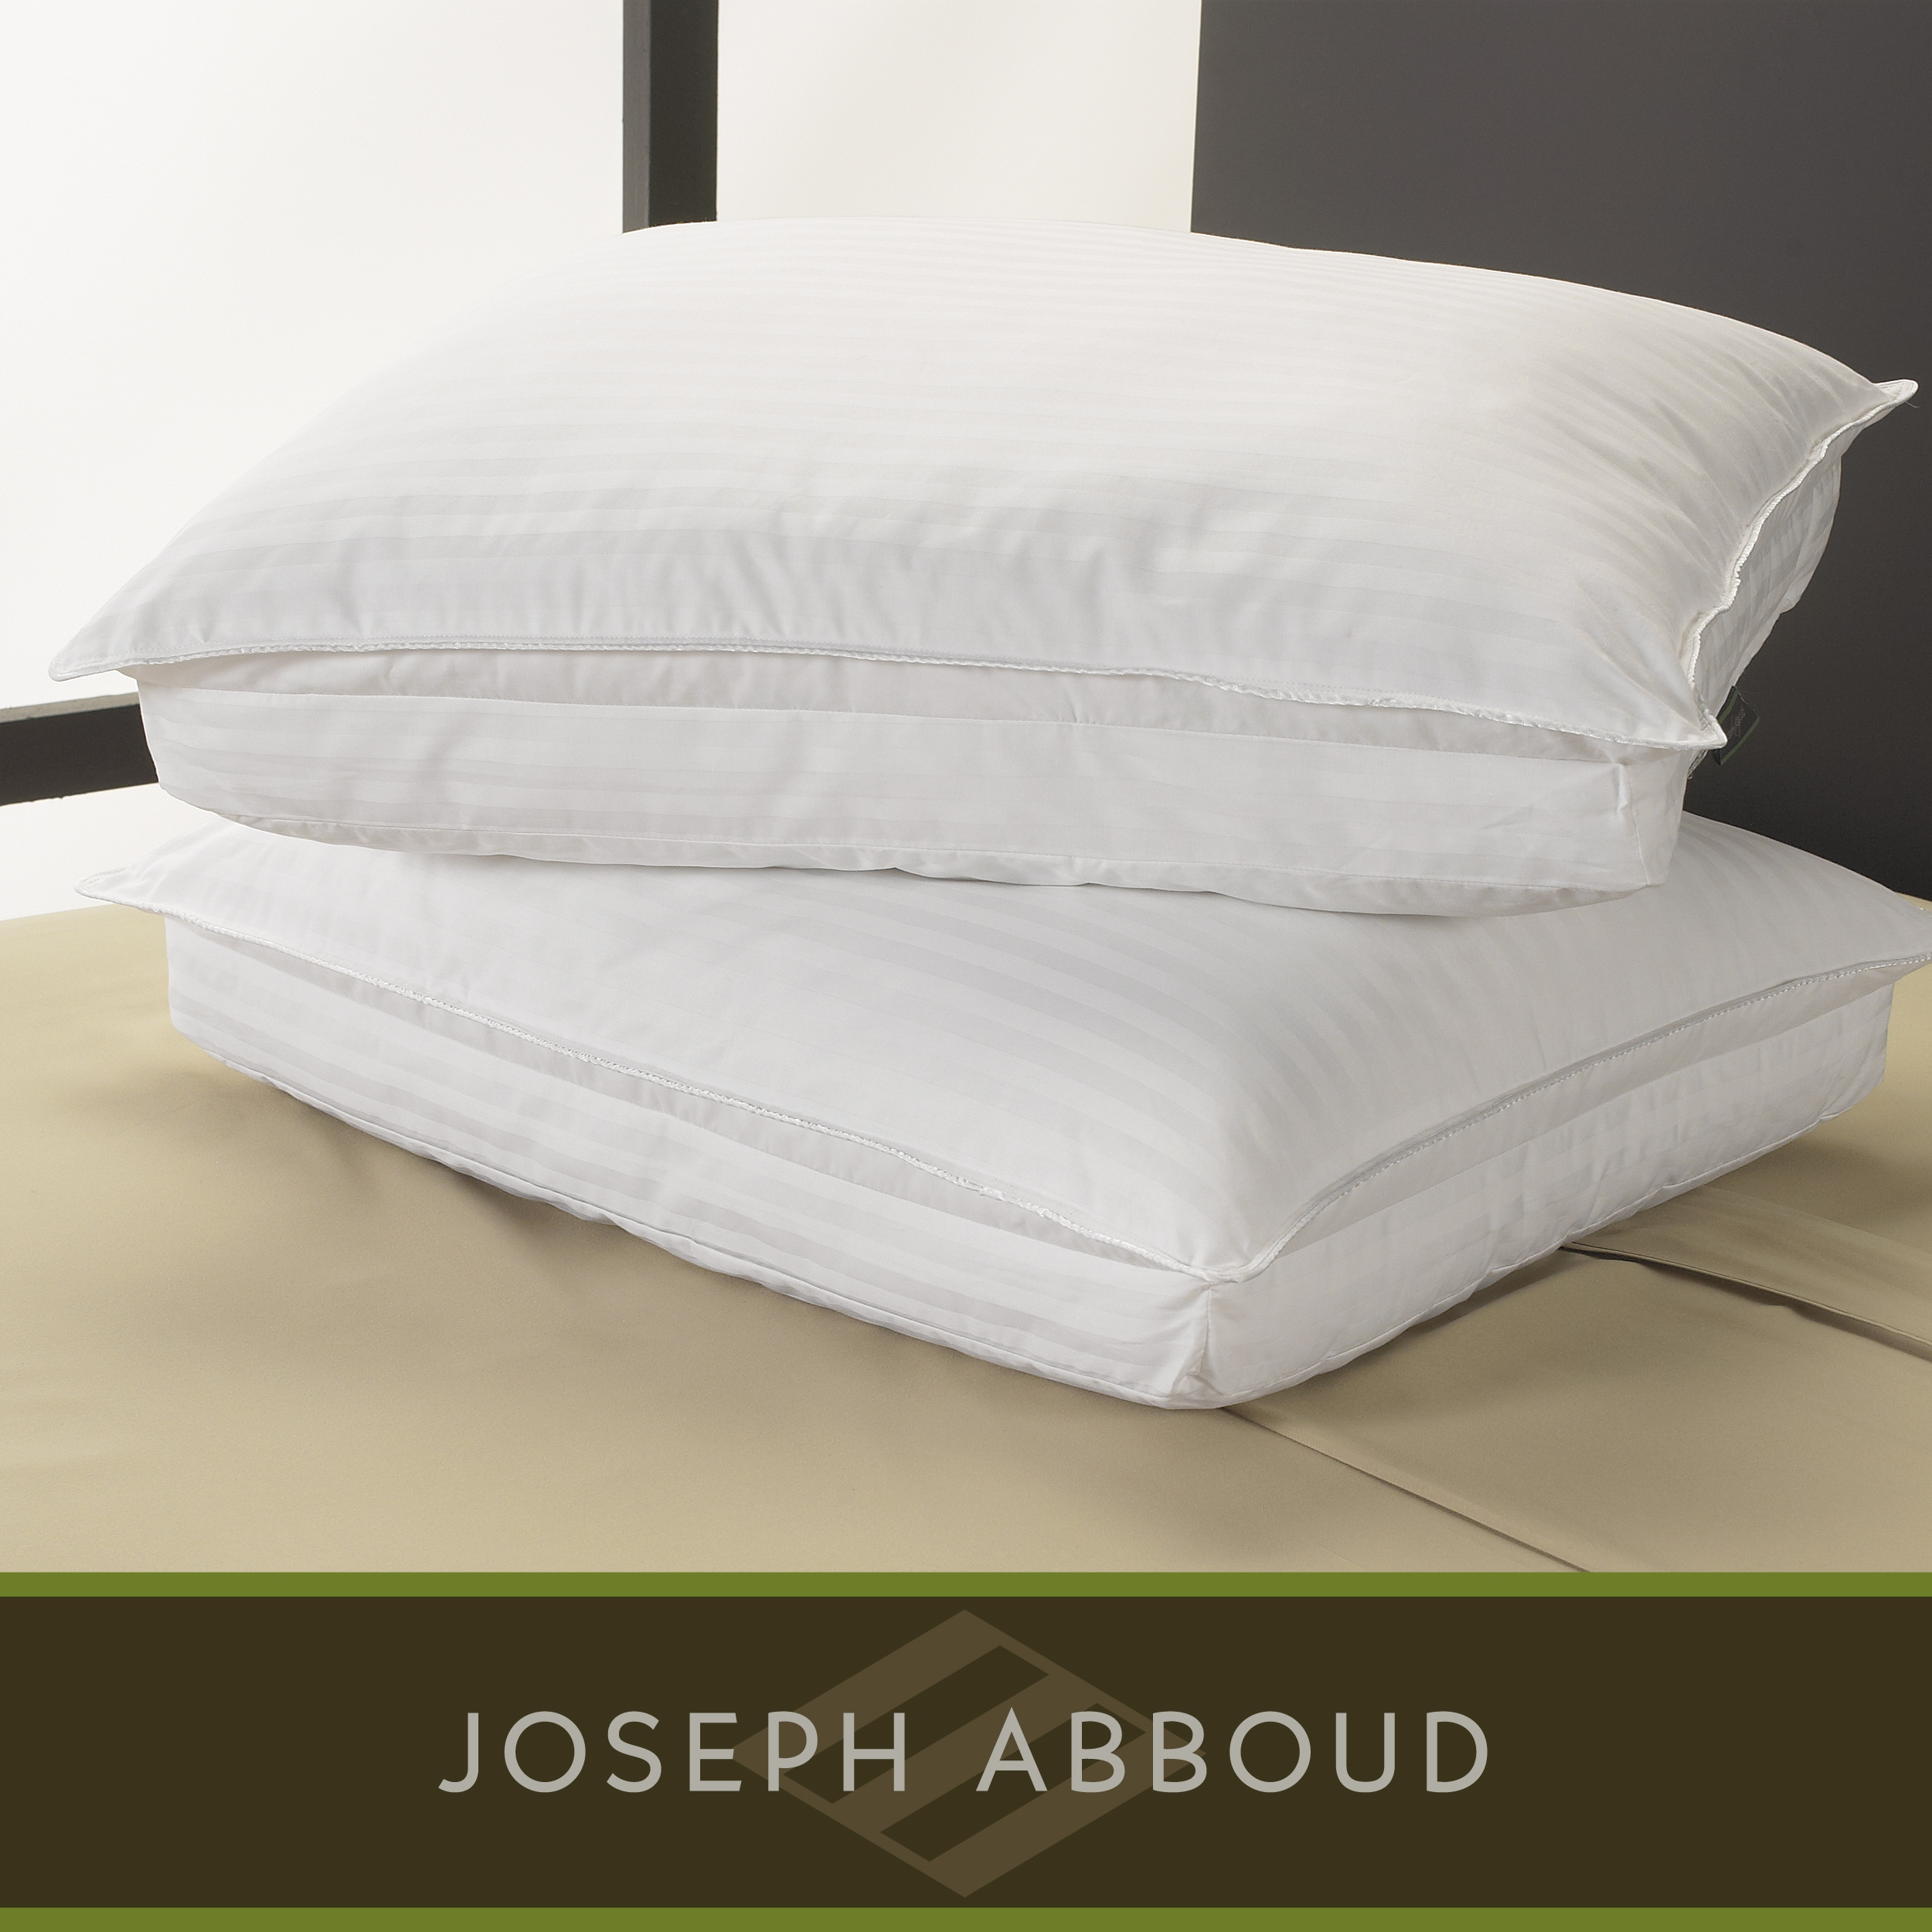 Joseph Abboud 300 Thread Count Pillow Top 2-in-1 Pillows (Set of 2) - Thumbnail 0